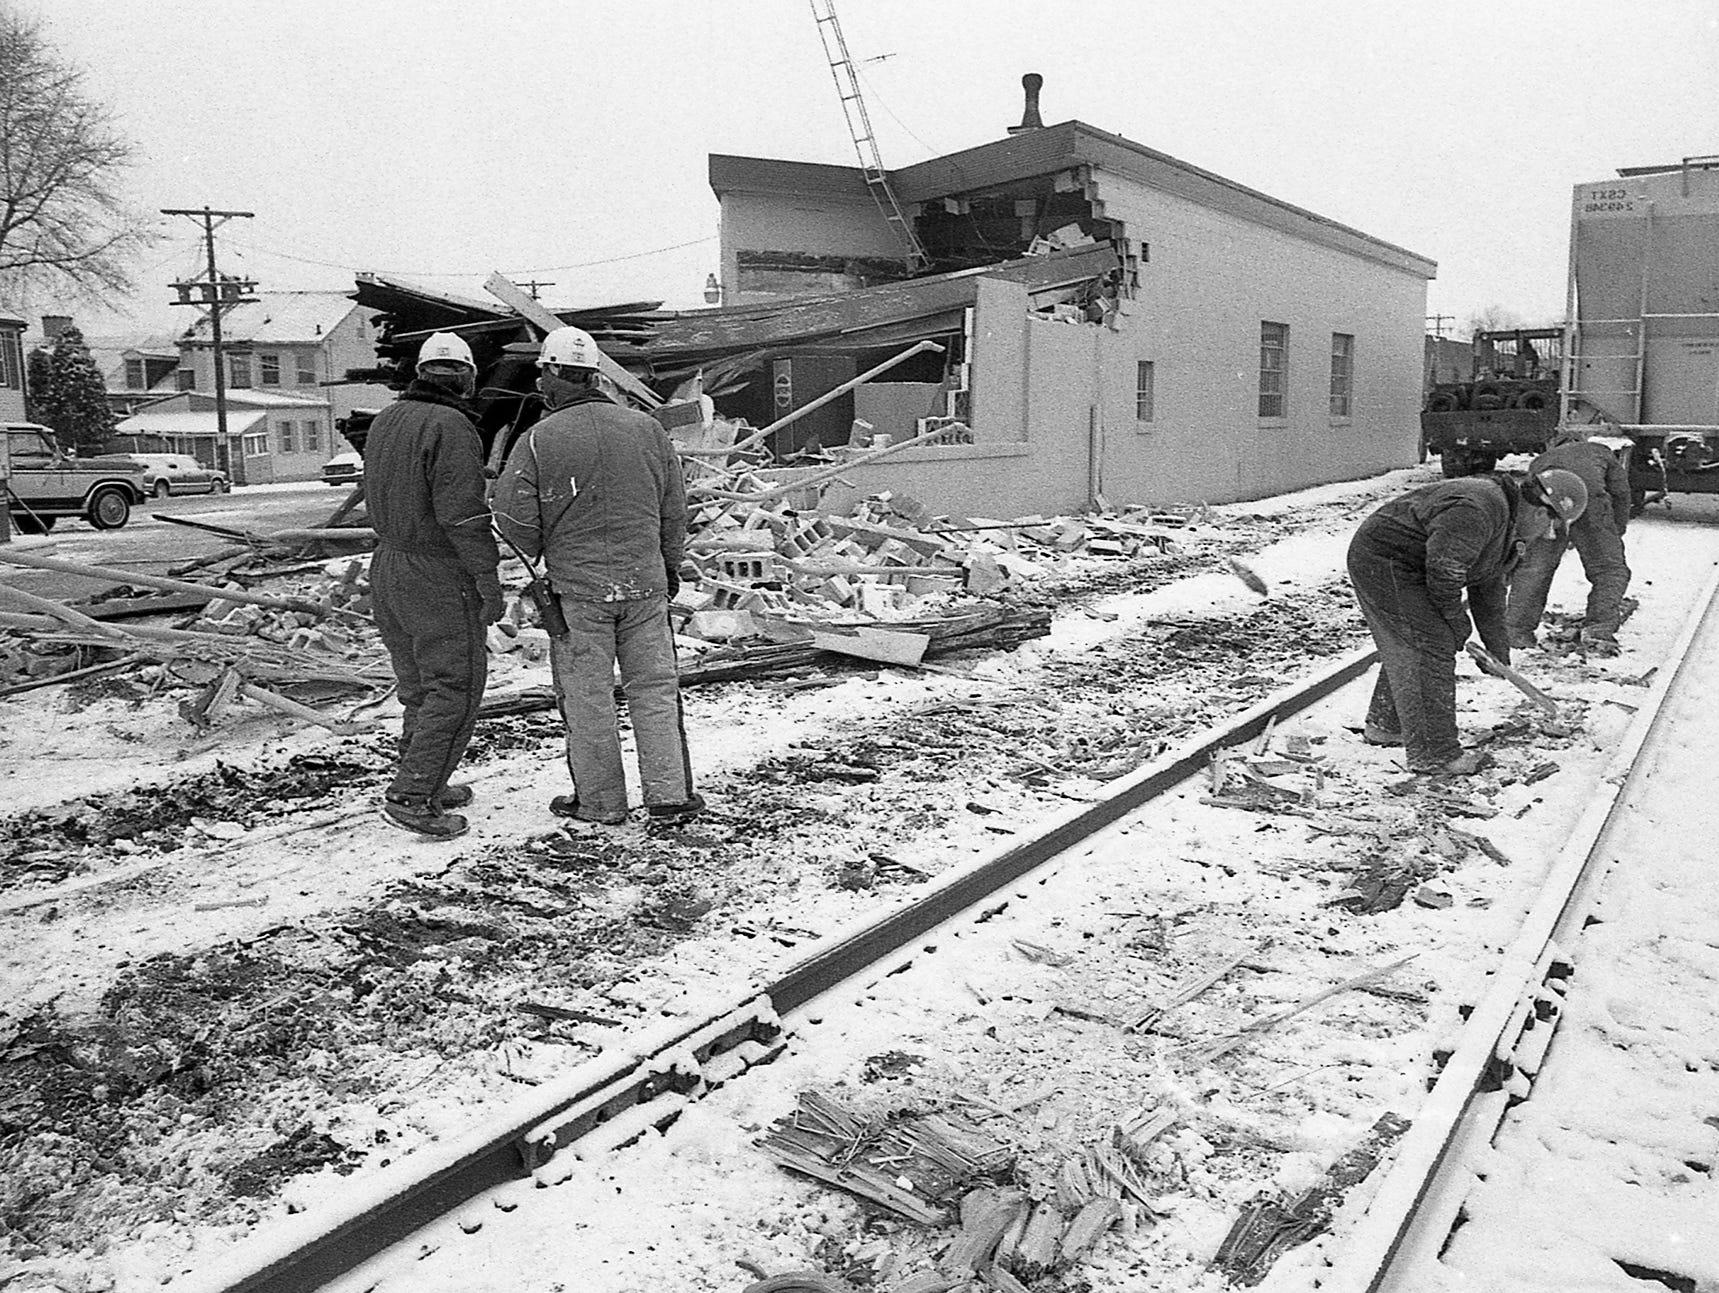 In December 1989, a train left the tracks near Arch Street and North George Street in York and destroyed Ellis Brothers. Workers inspect the track after the incident.